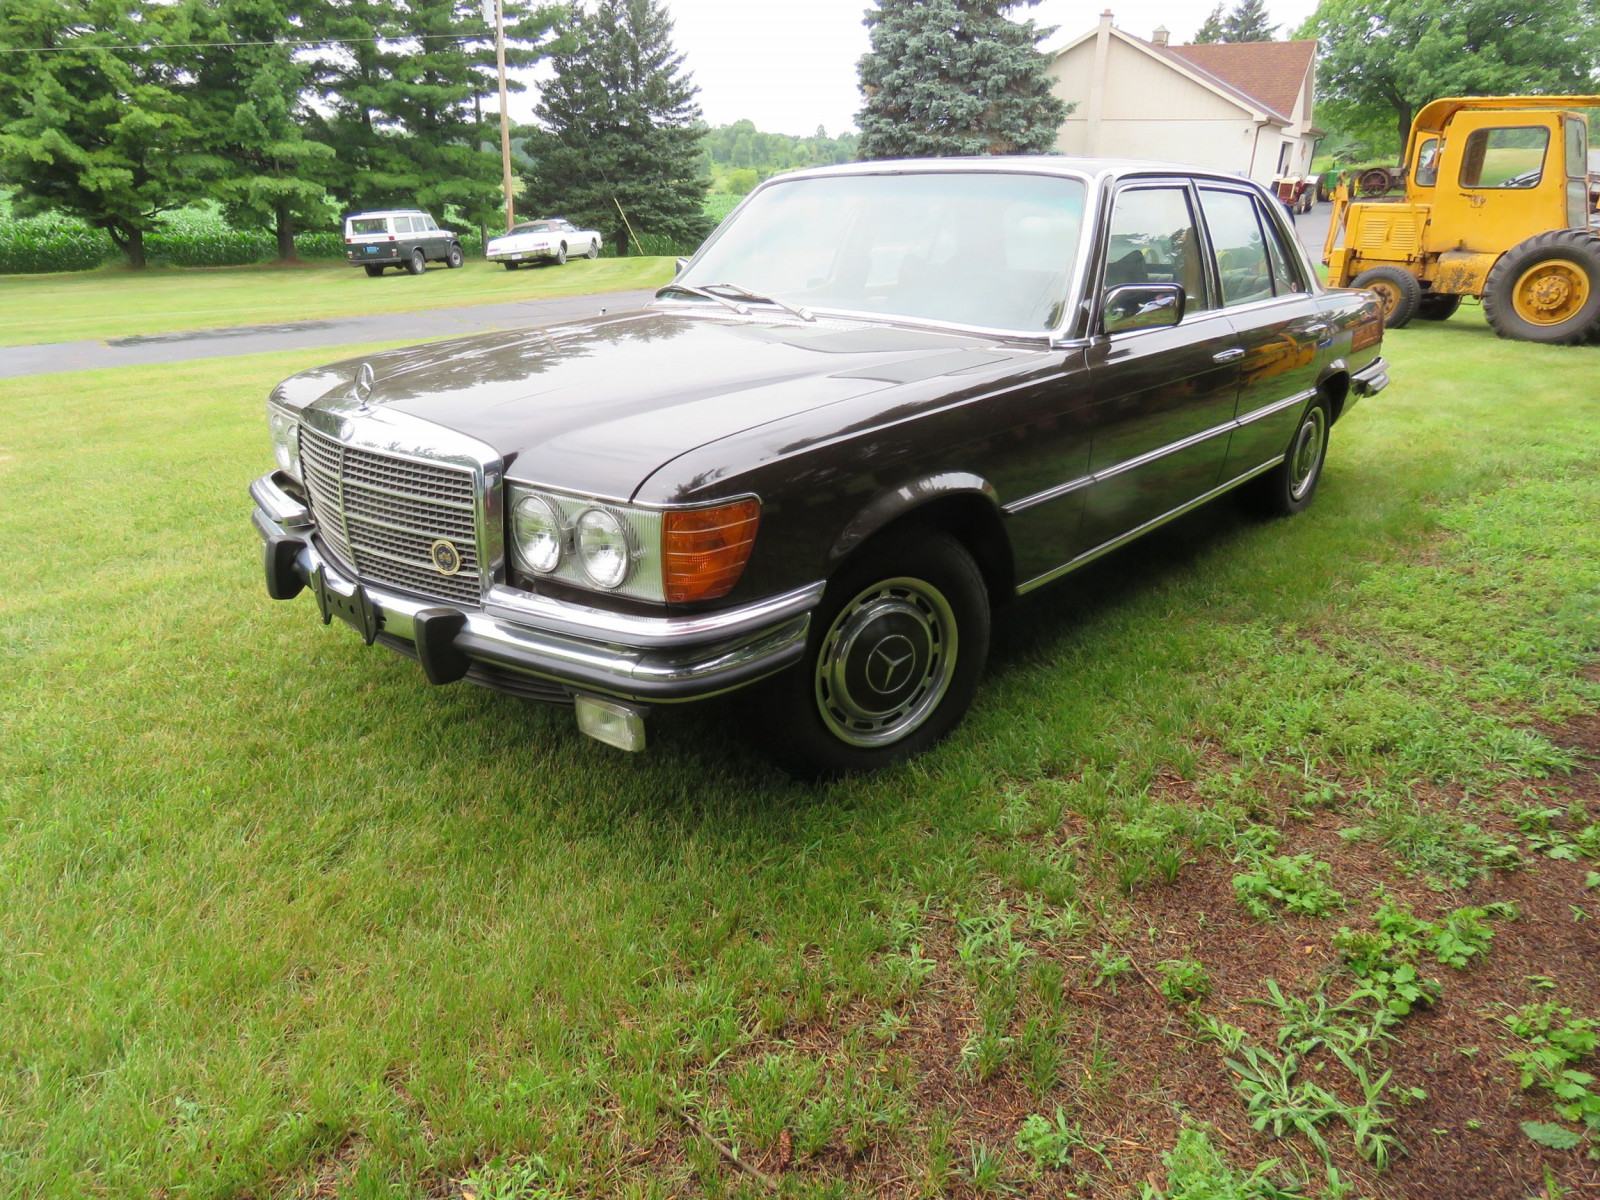 1973 Mercedes 450 SE 4dr Sedan - Image 3